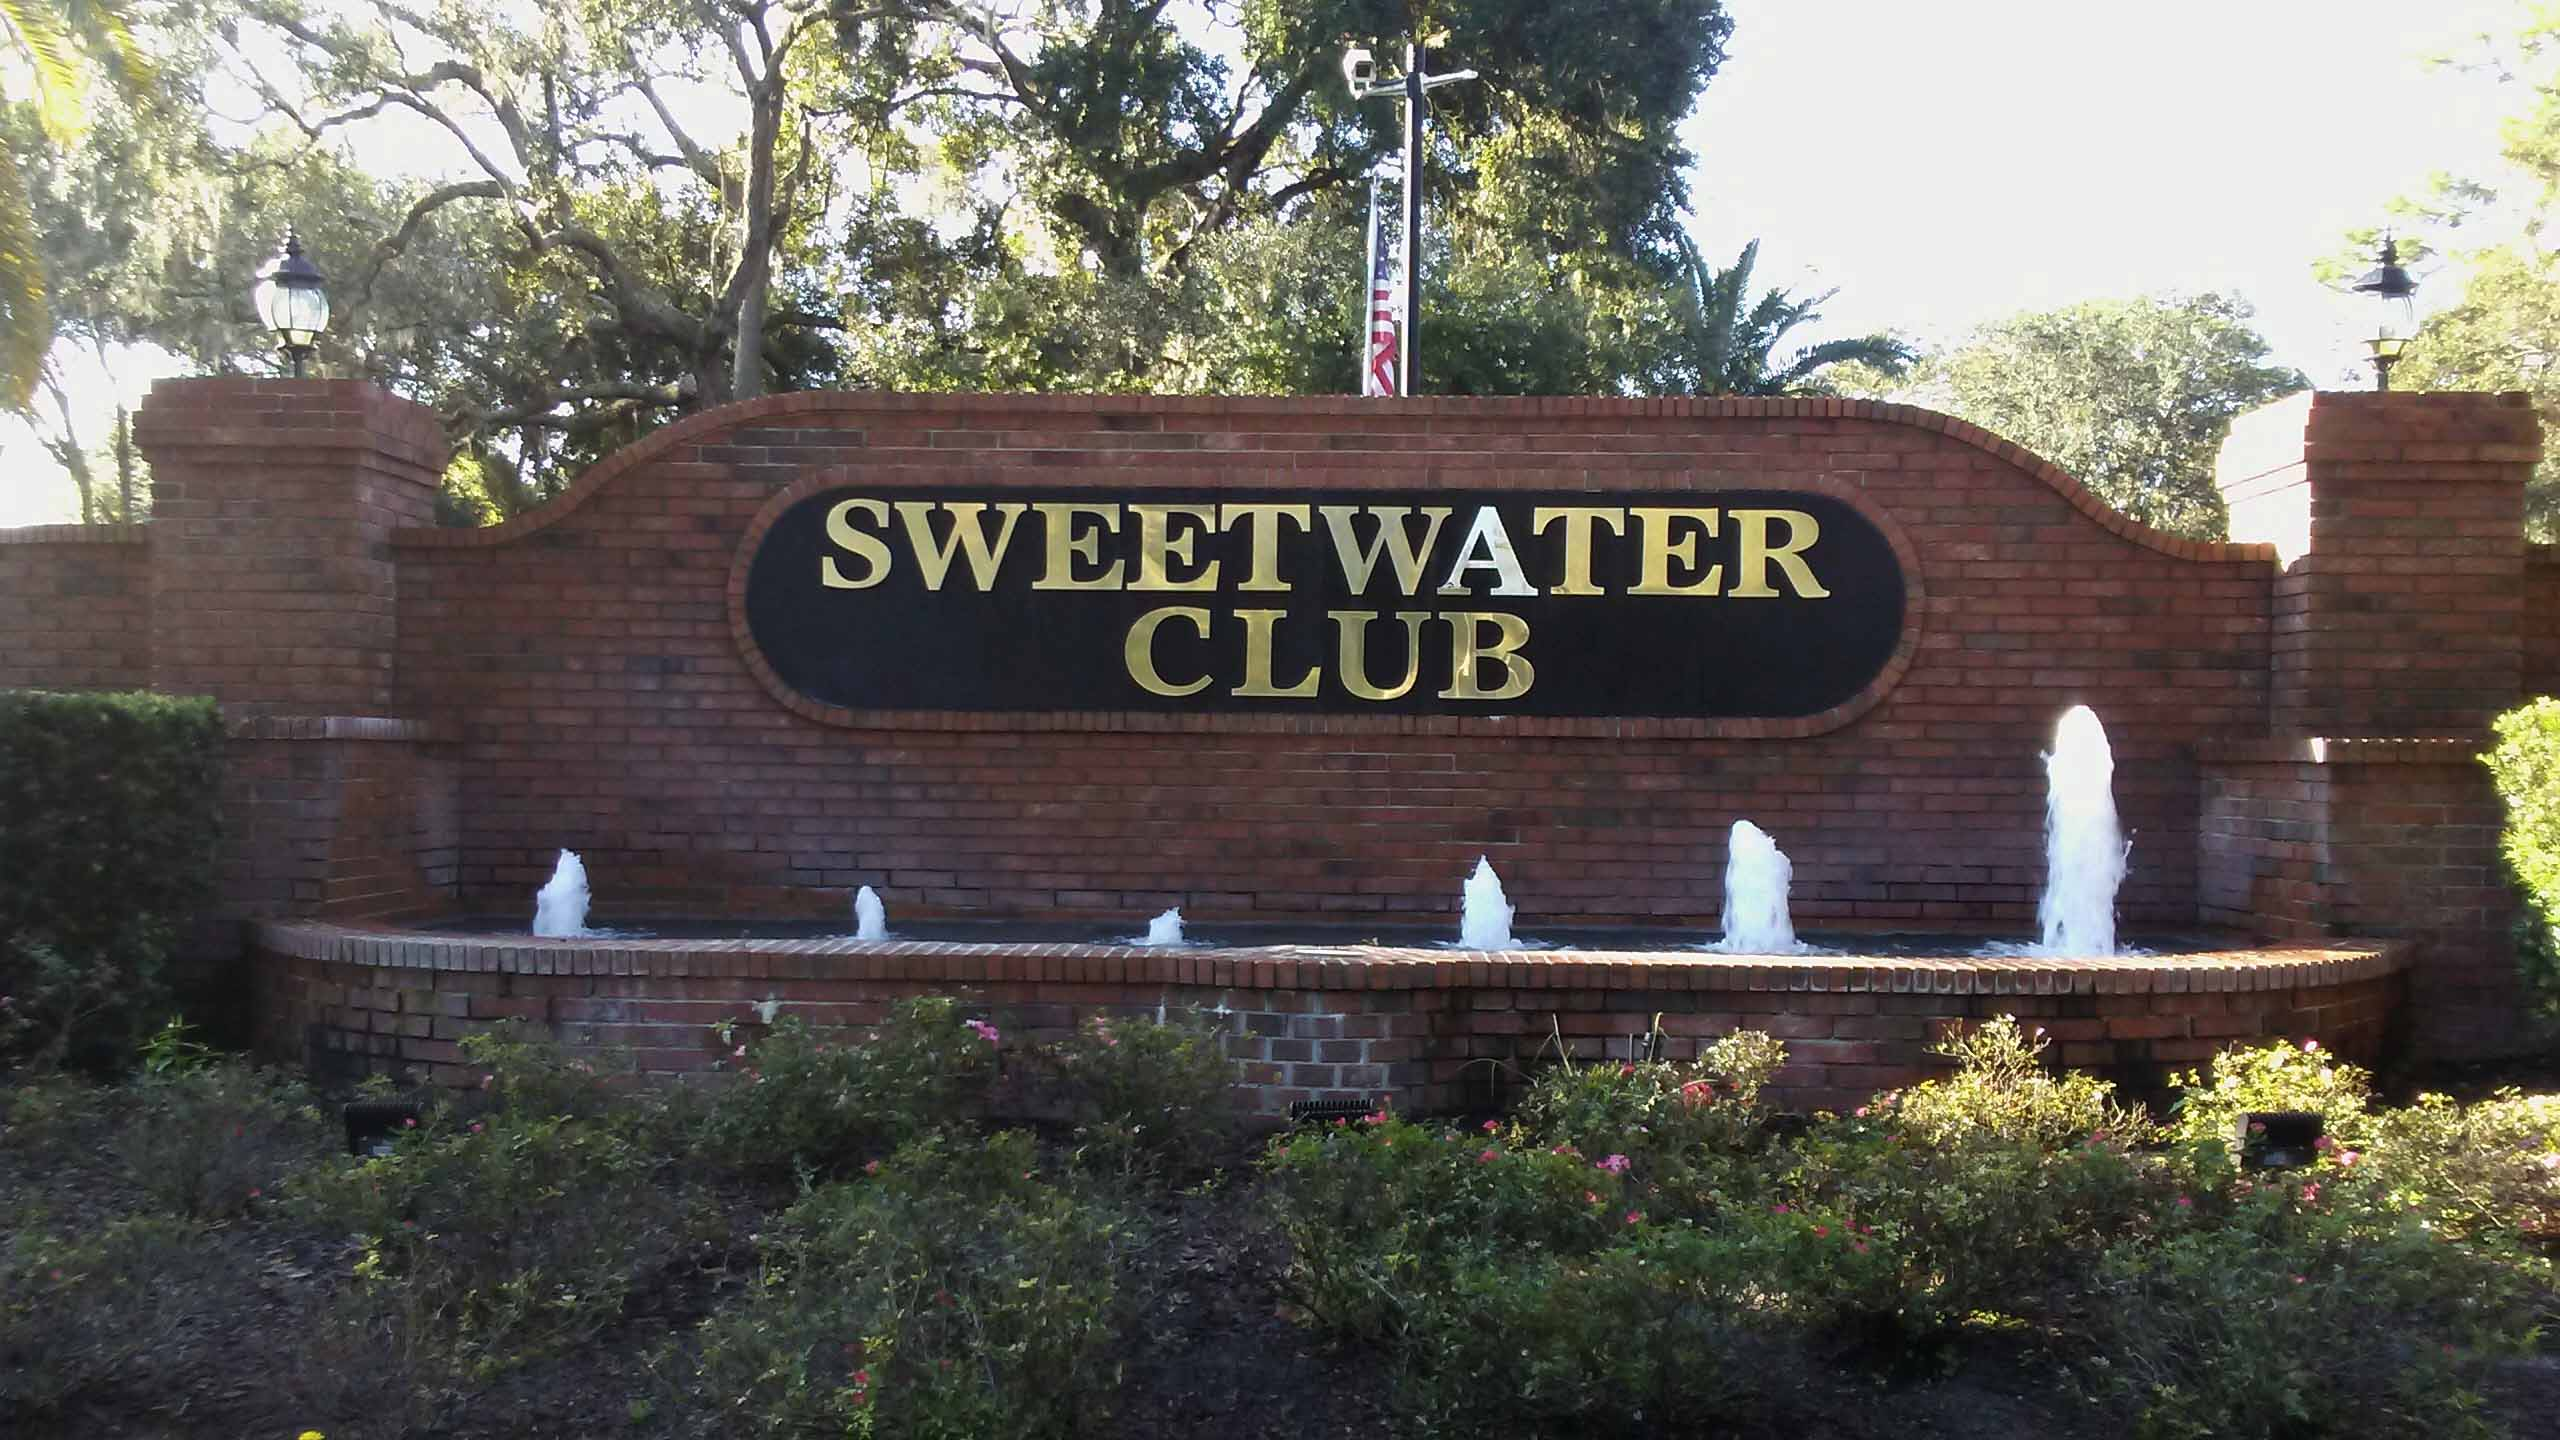 Sweetwater Club, Longwood, Florida 32779